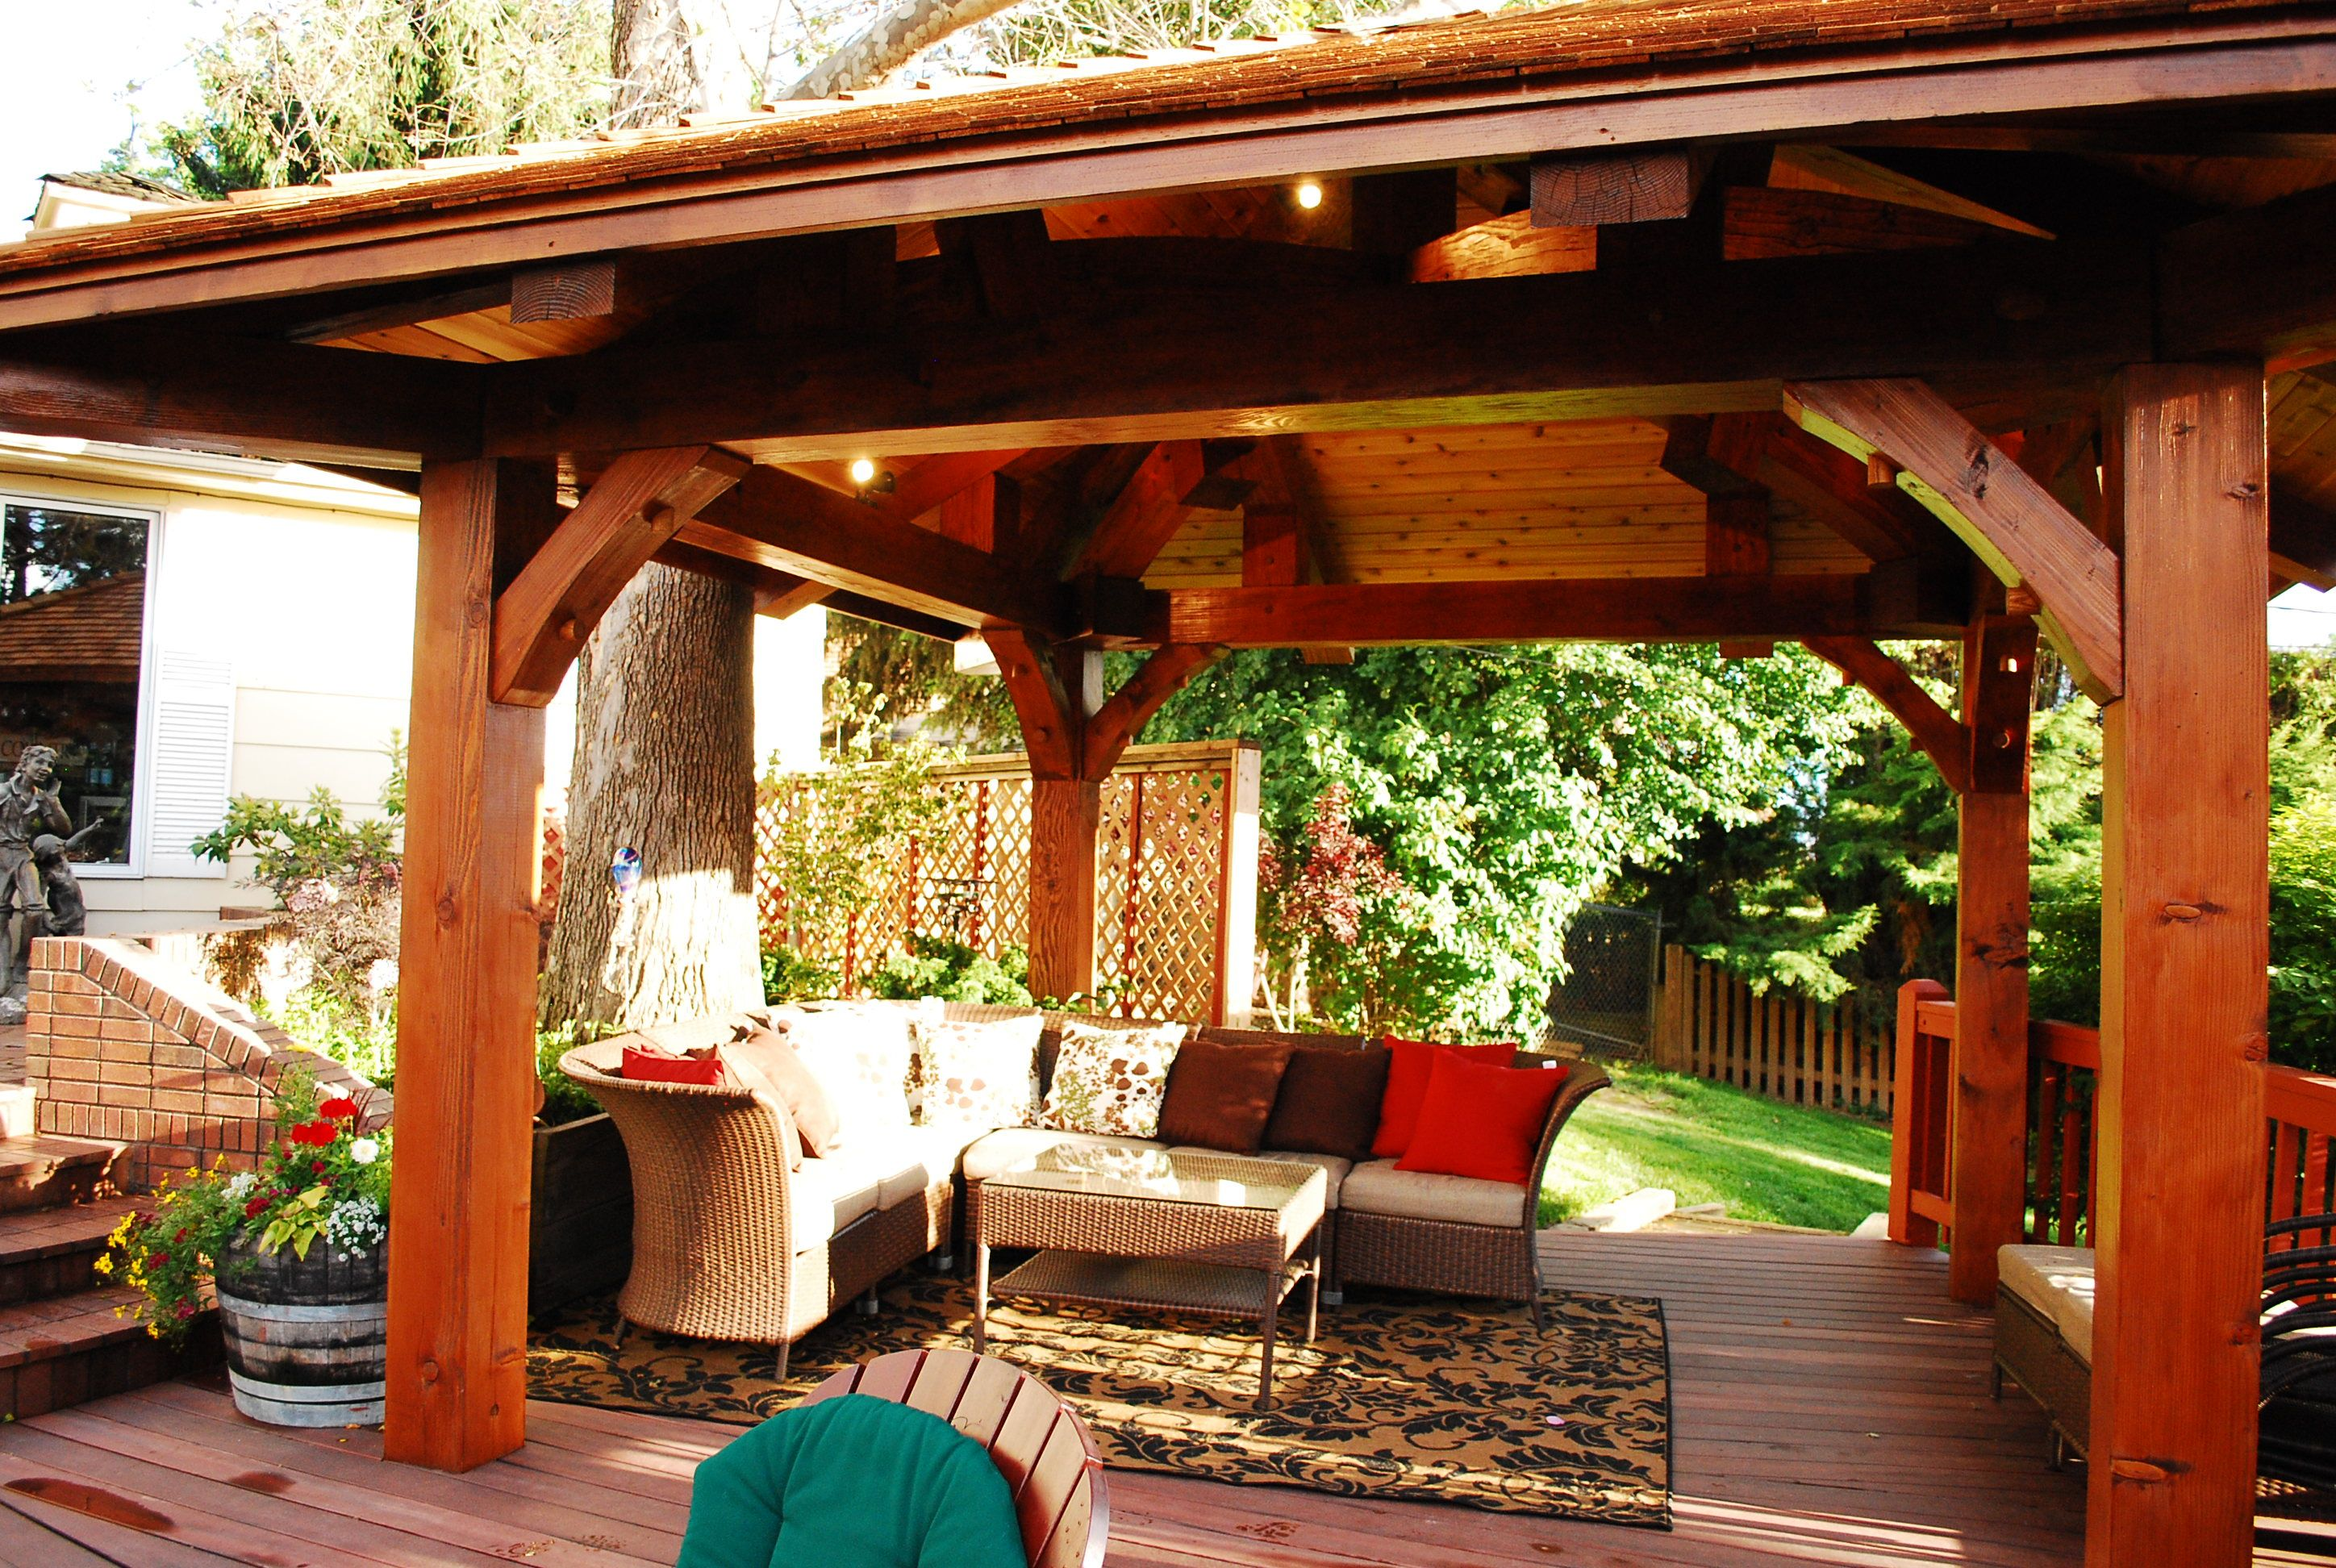 The log home floor plan blogtimberscape gazebos for Home shade structures